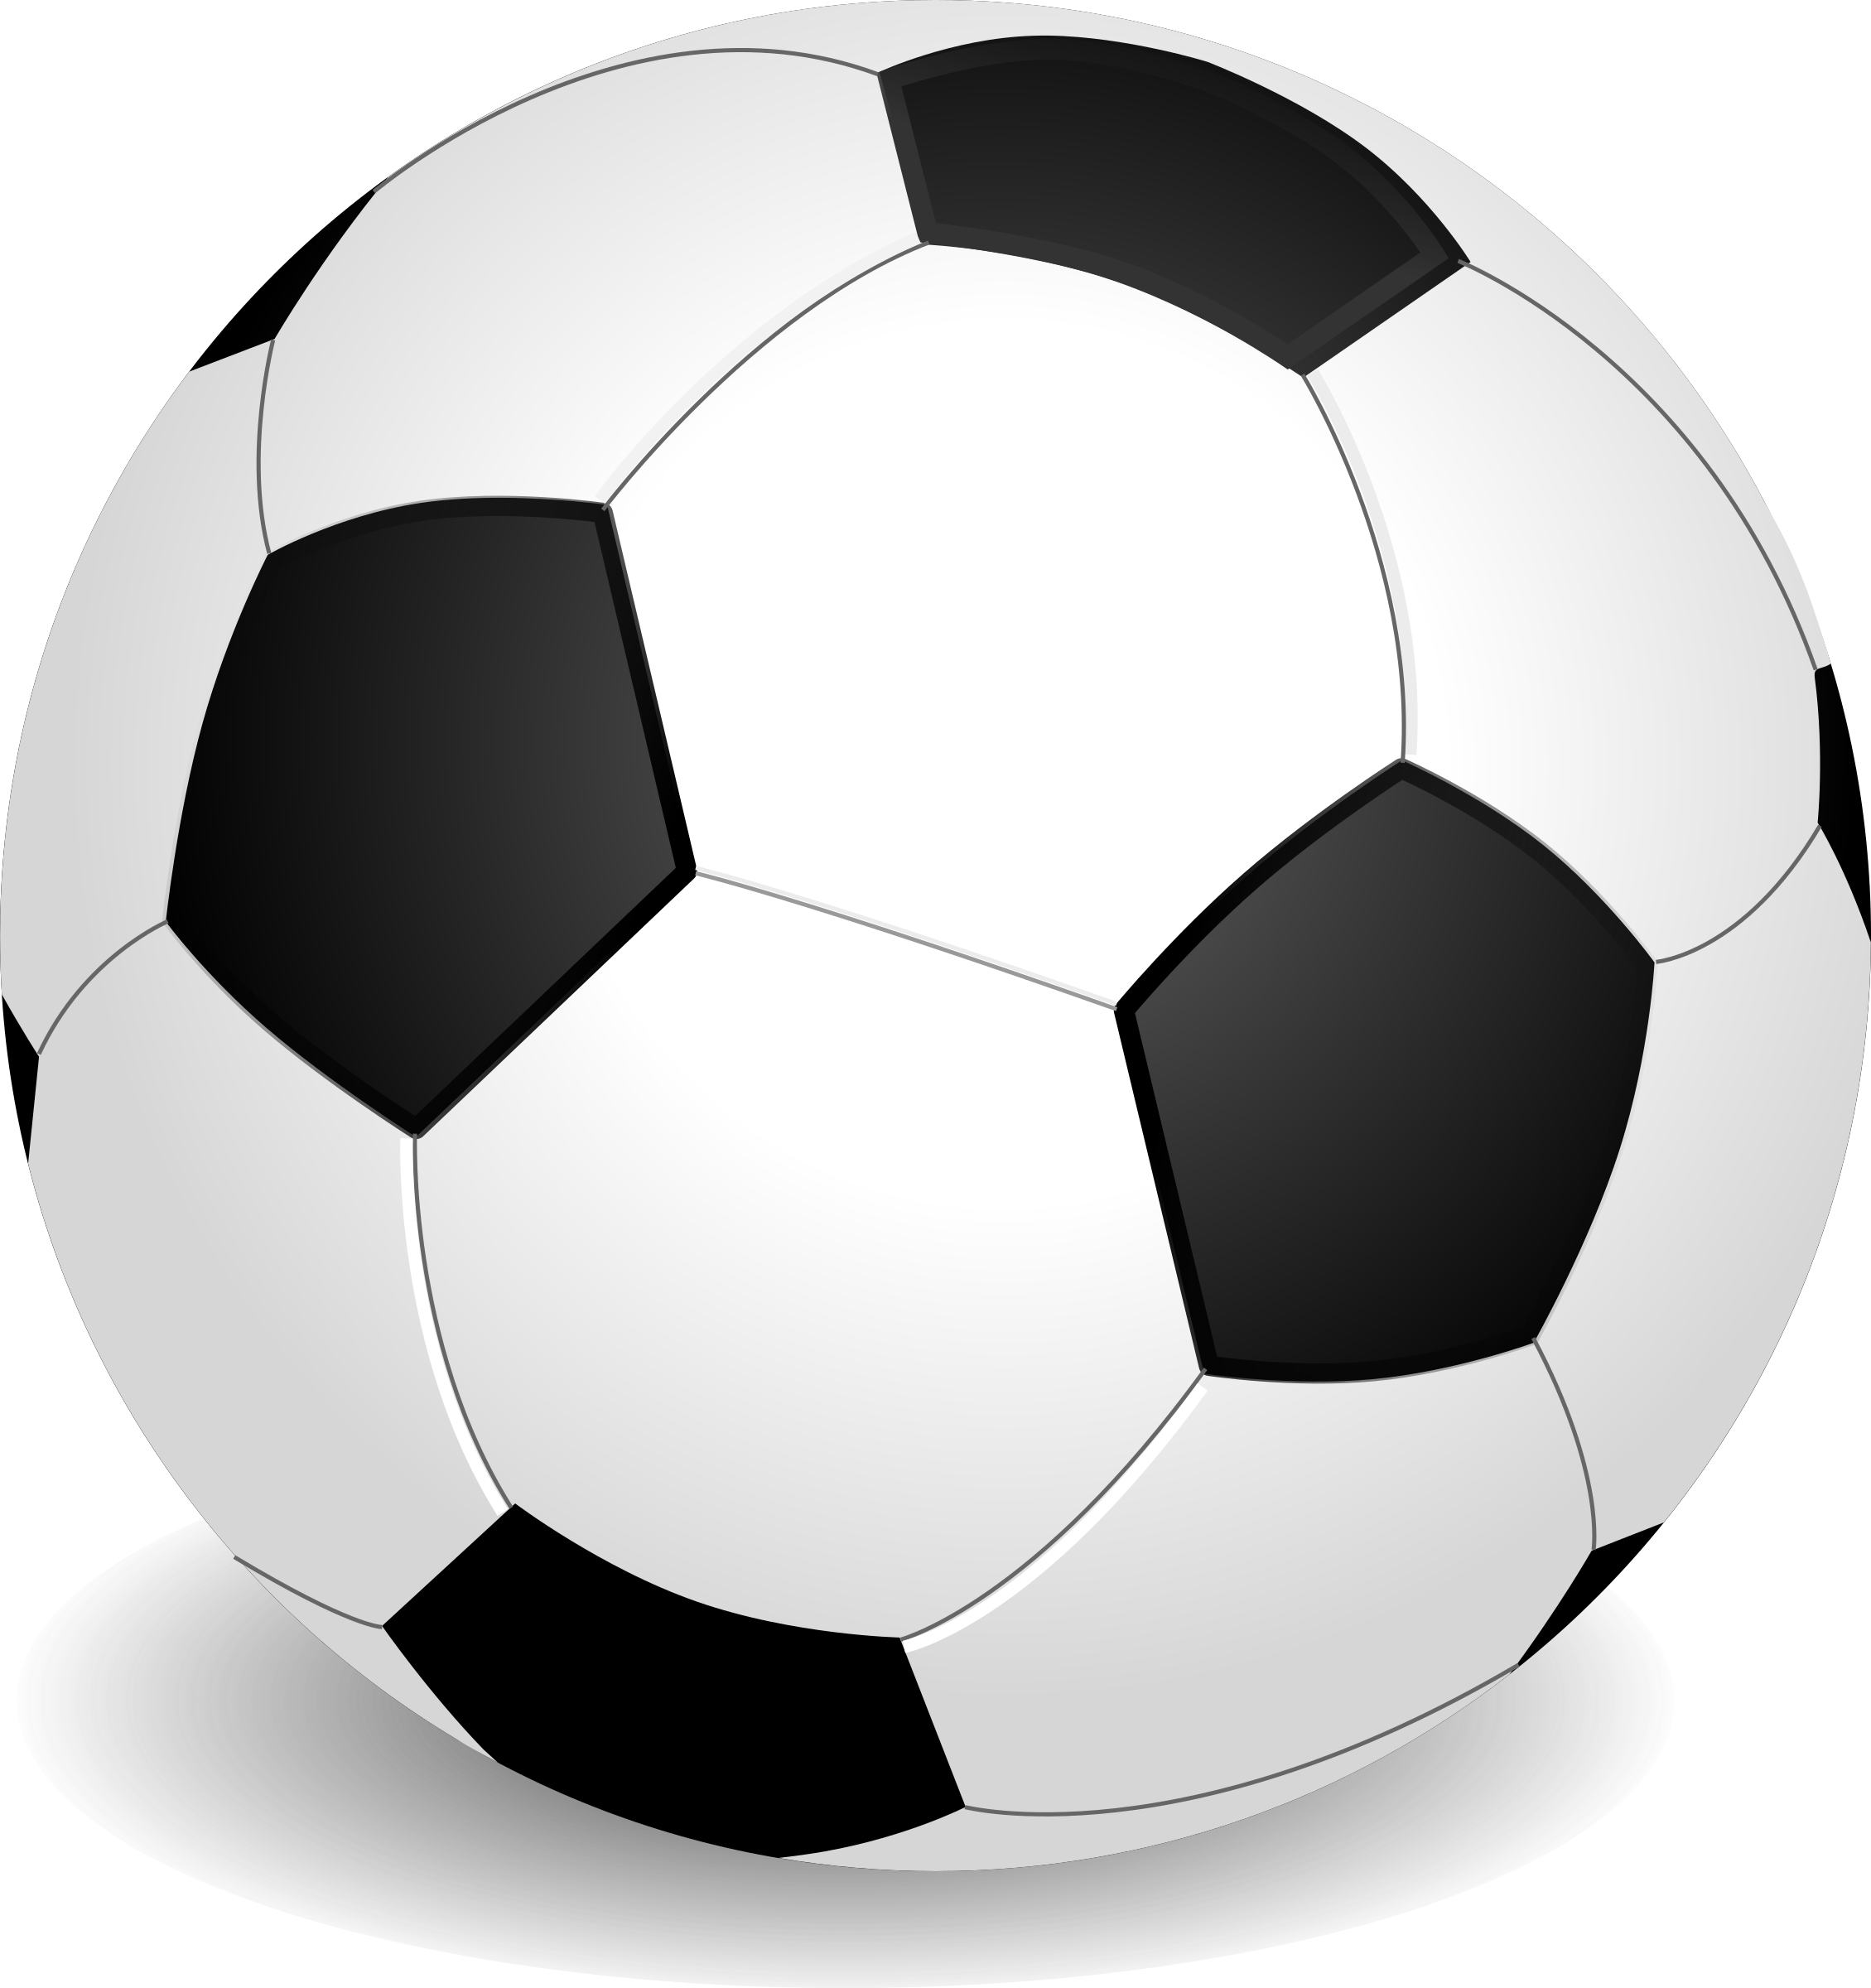 Football (soccer) by flomar